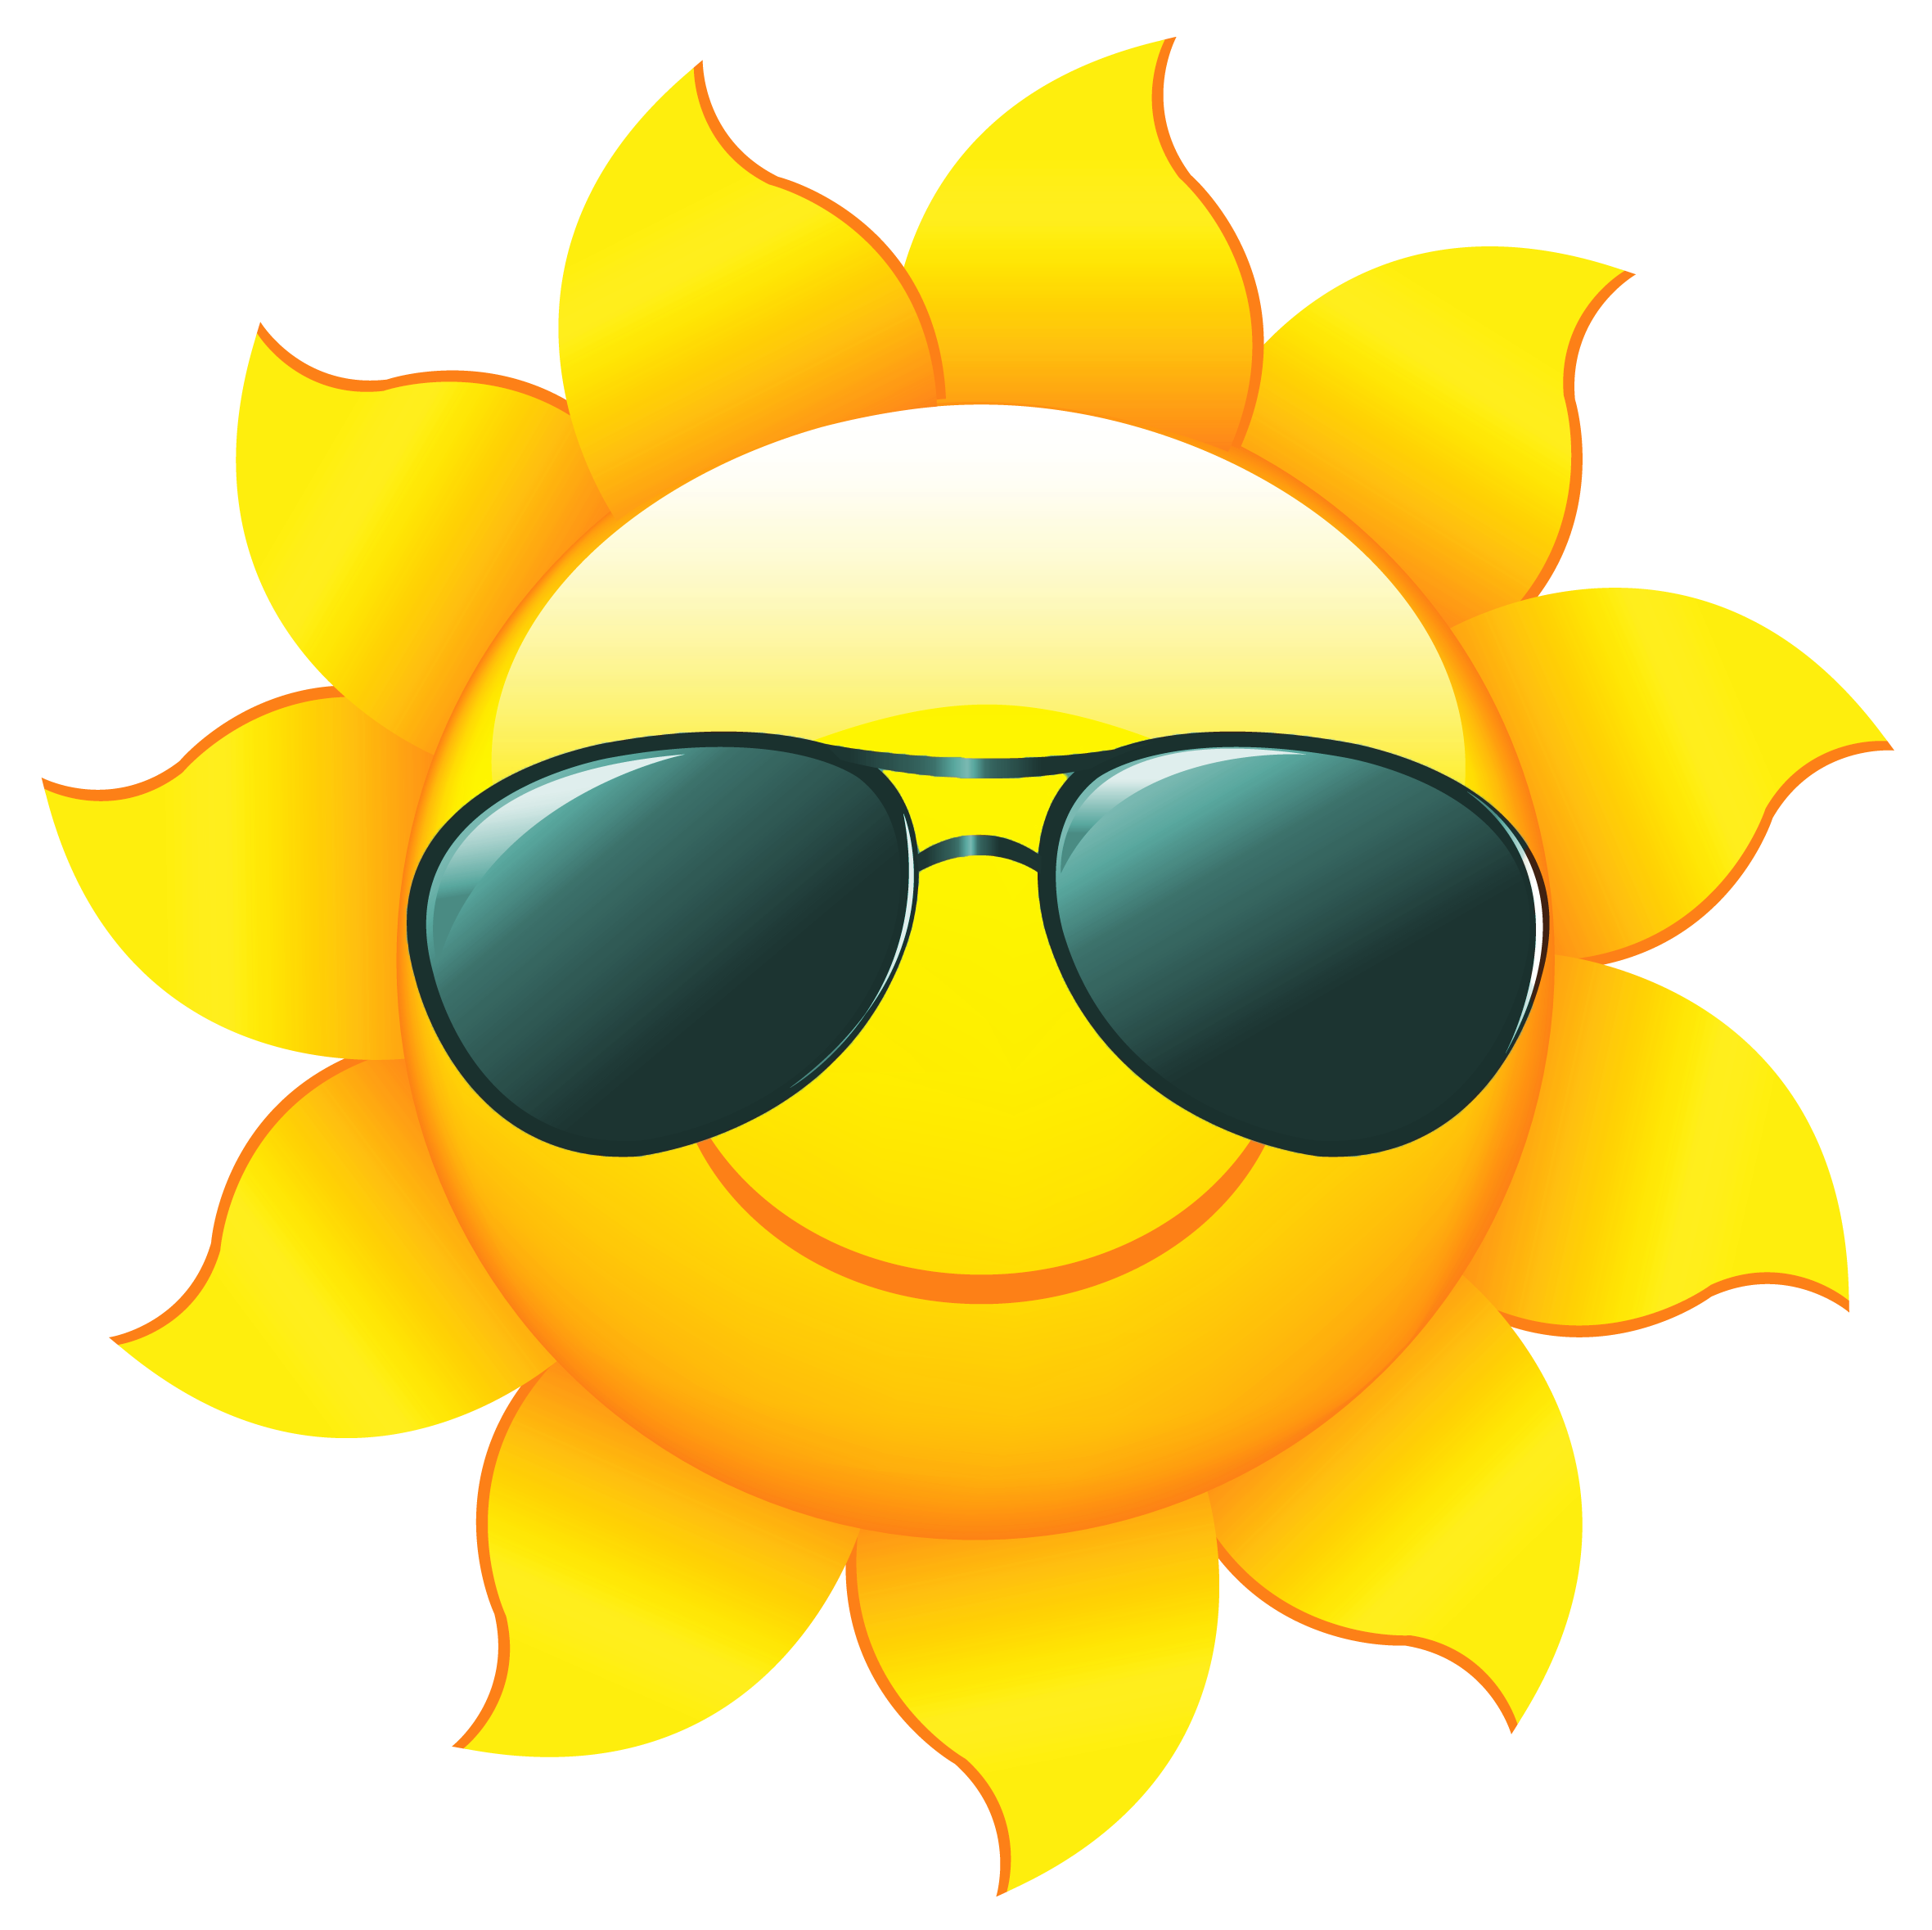 Transparent sunshine summer. Cropped sun clipart with